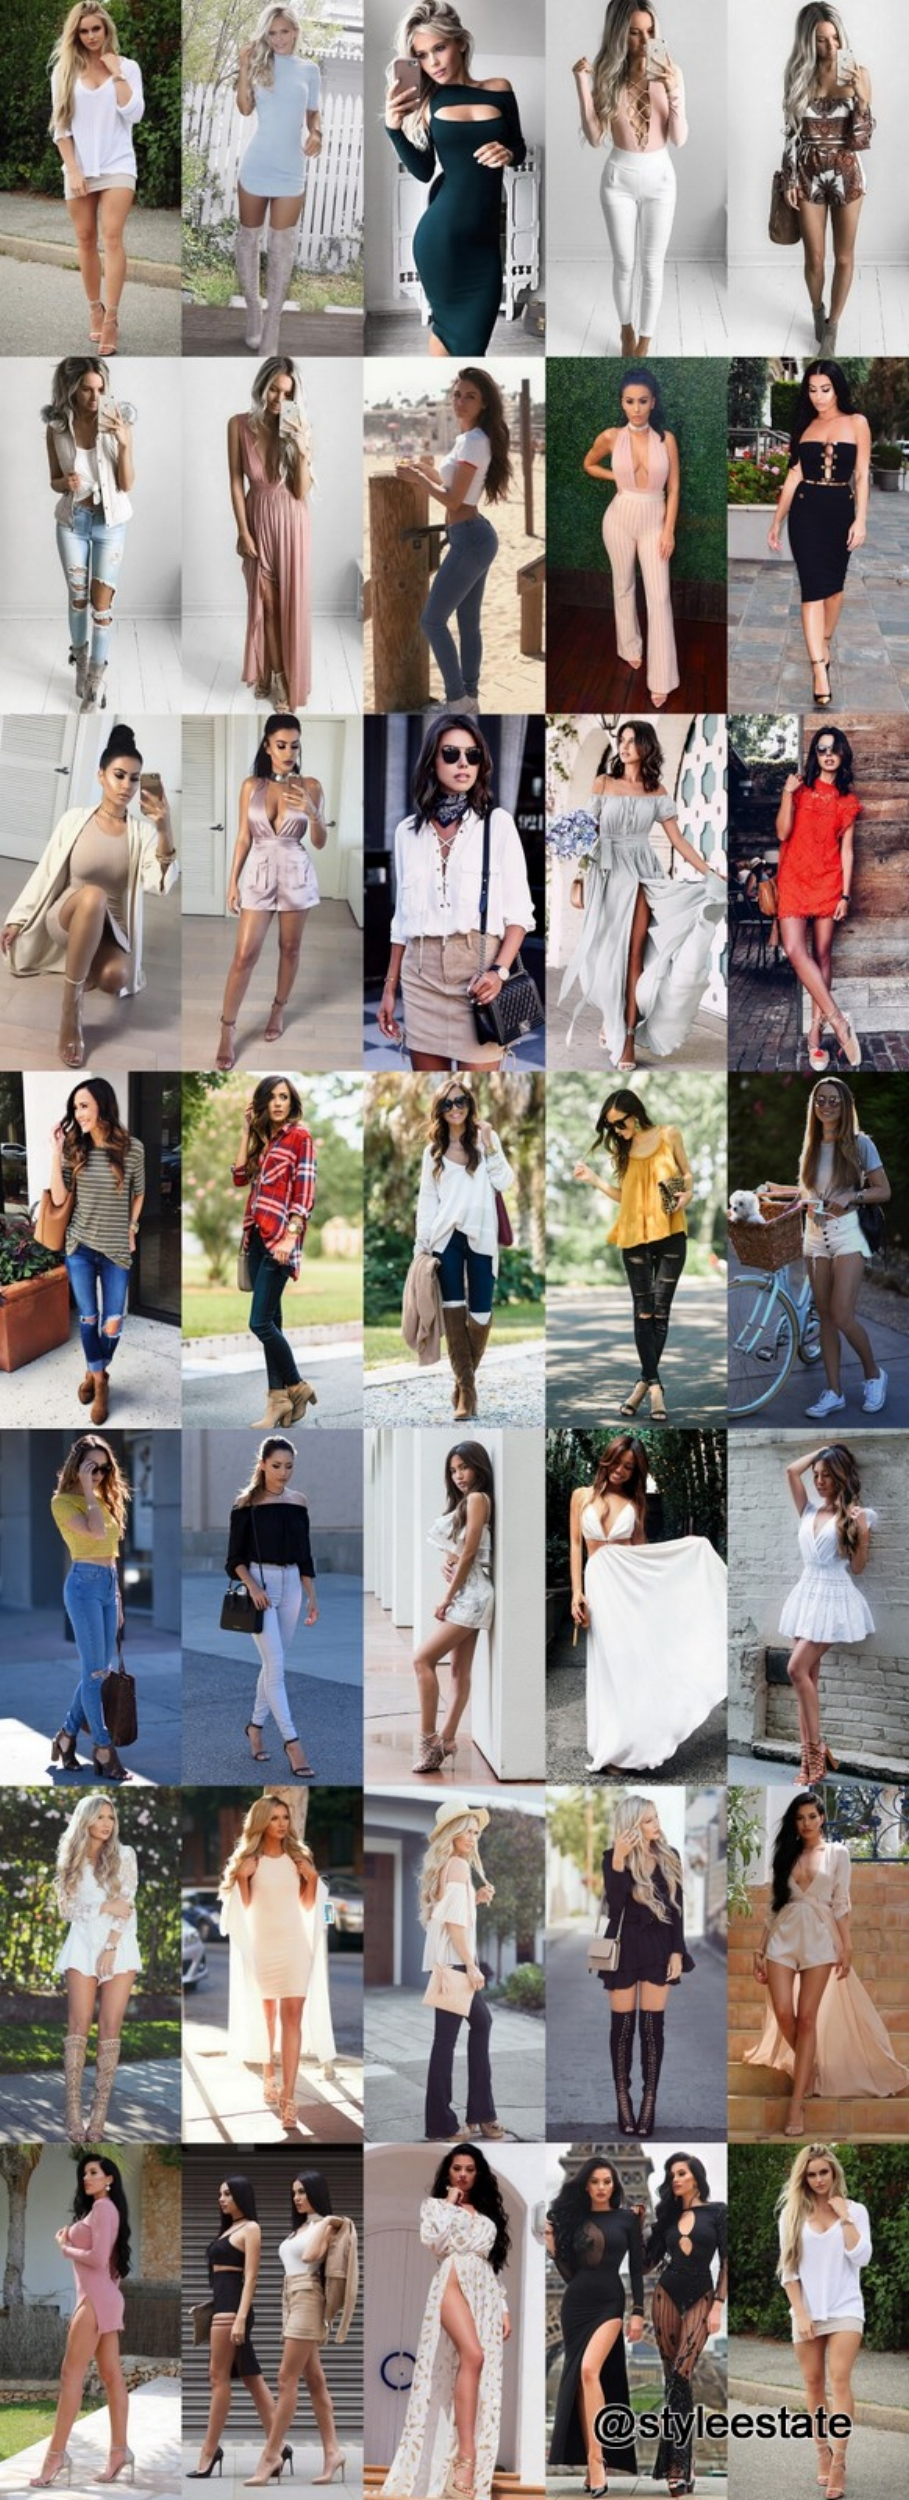 What's Trending - 34 Outfits (Summer) 2016